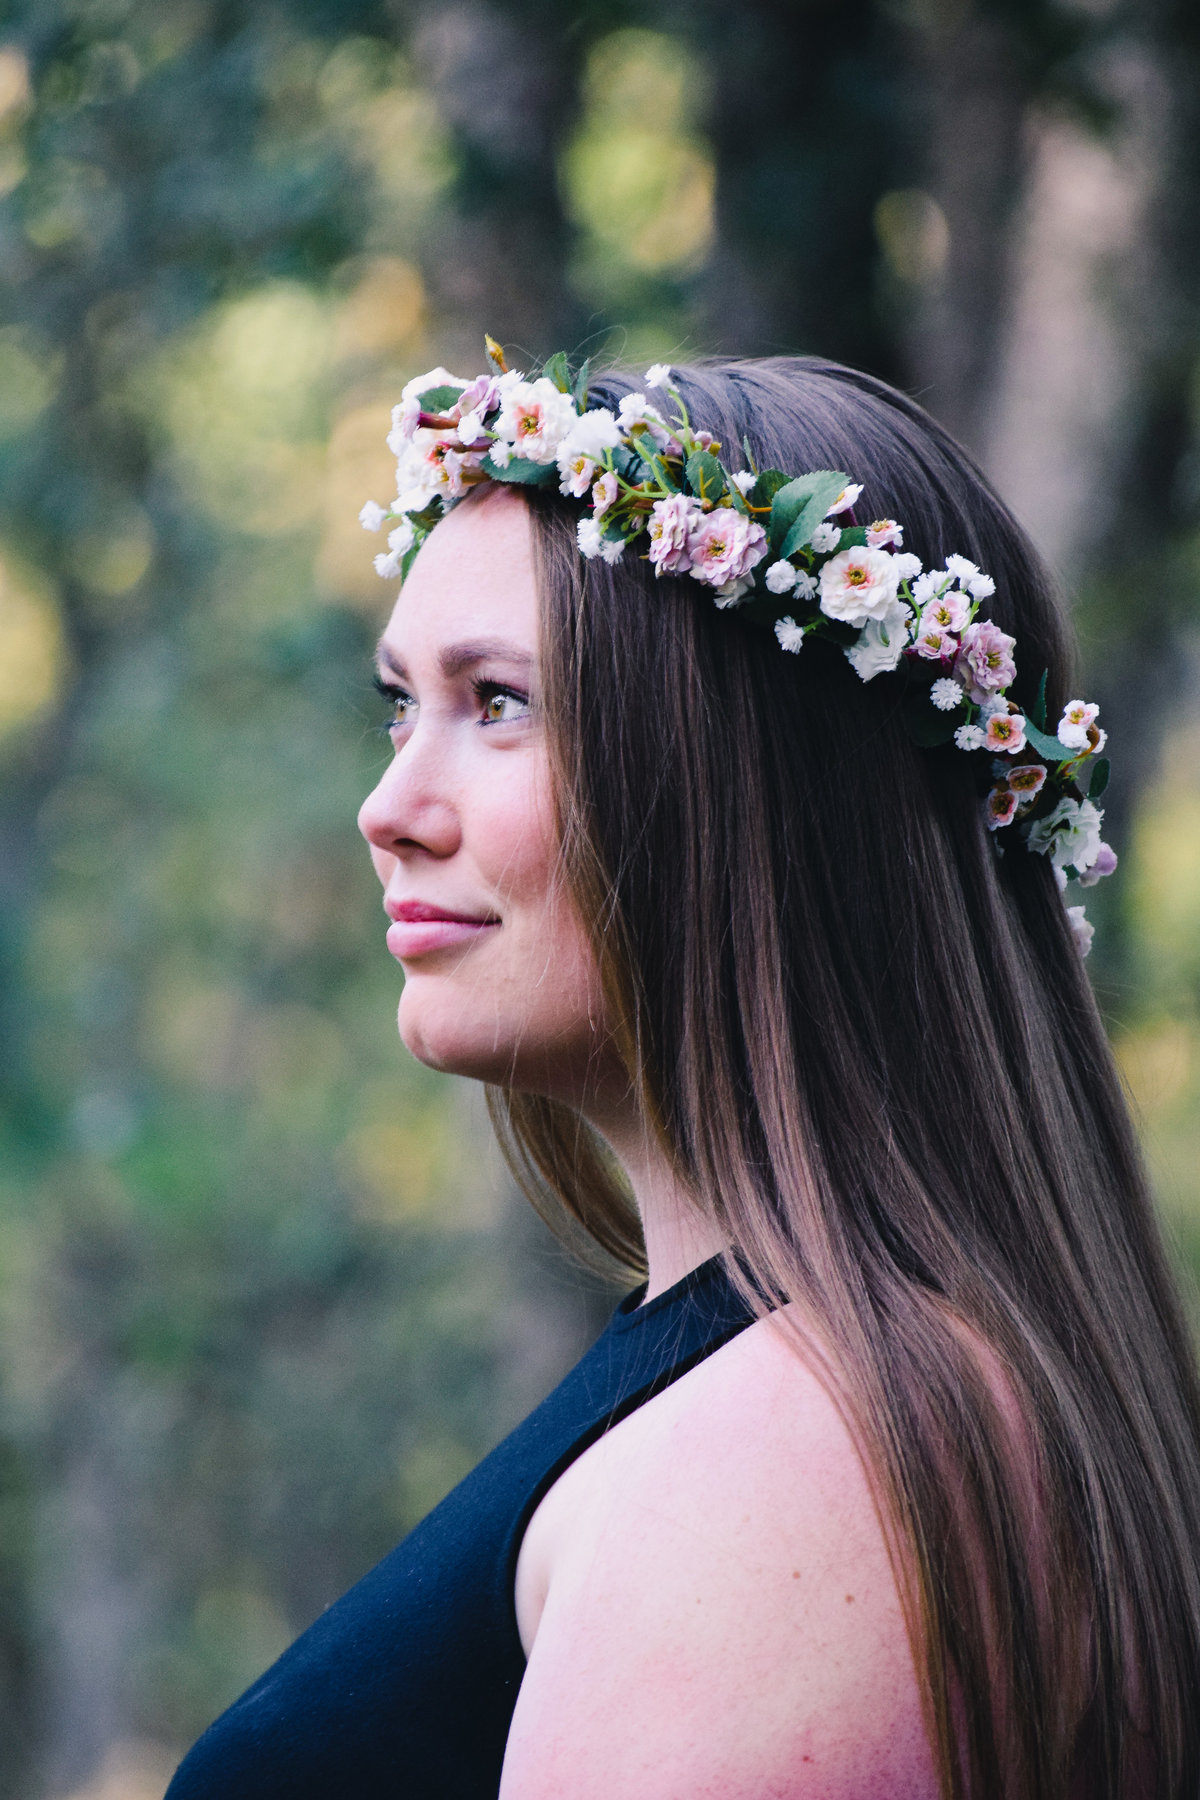 senior portrait of girl with flower crown